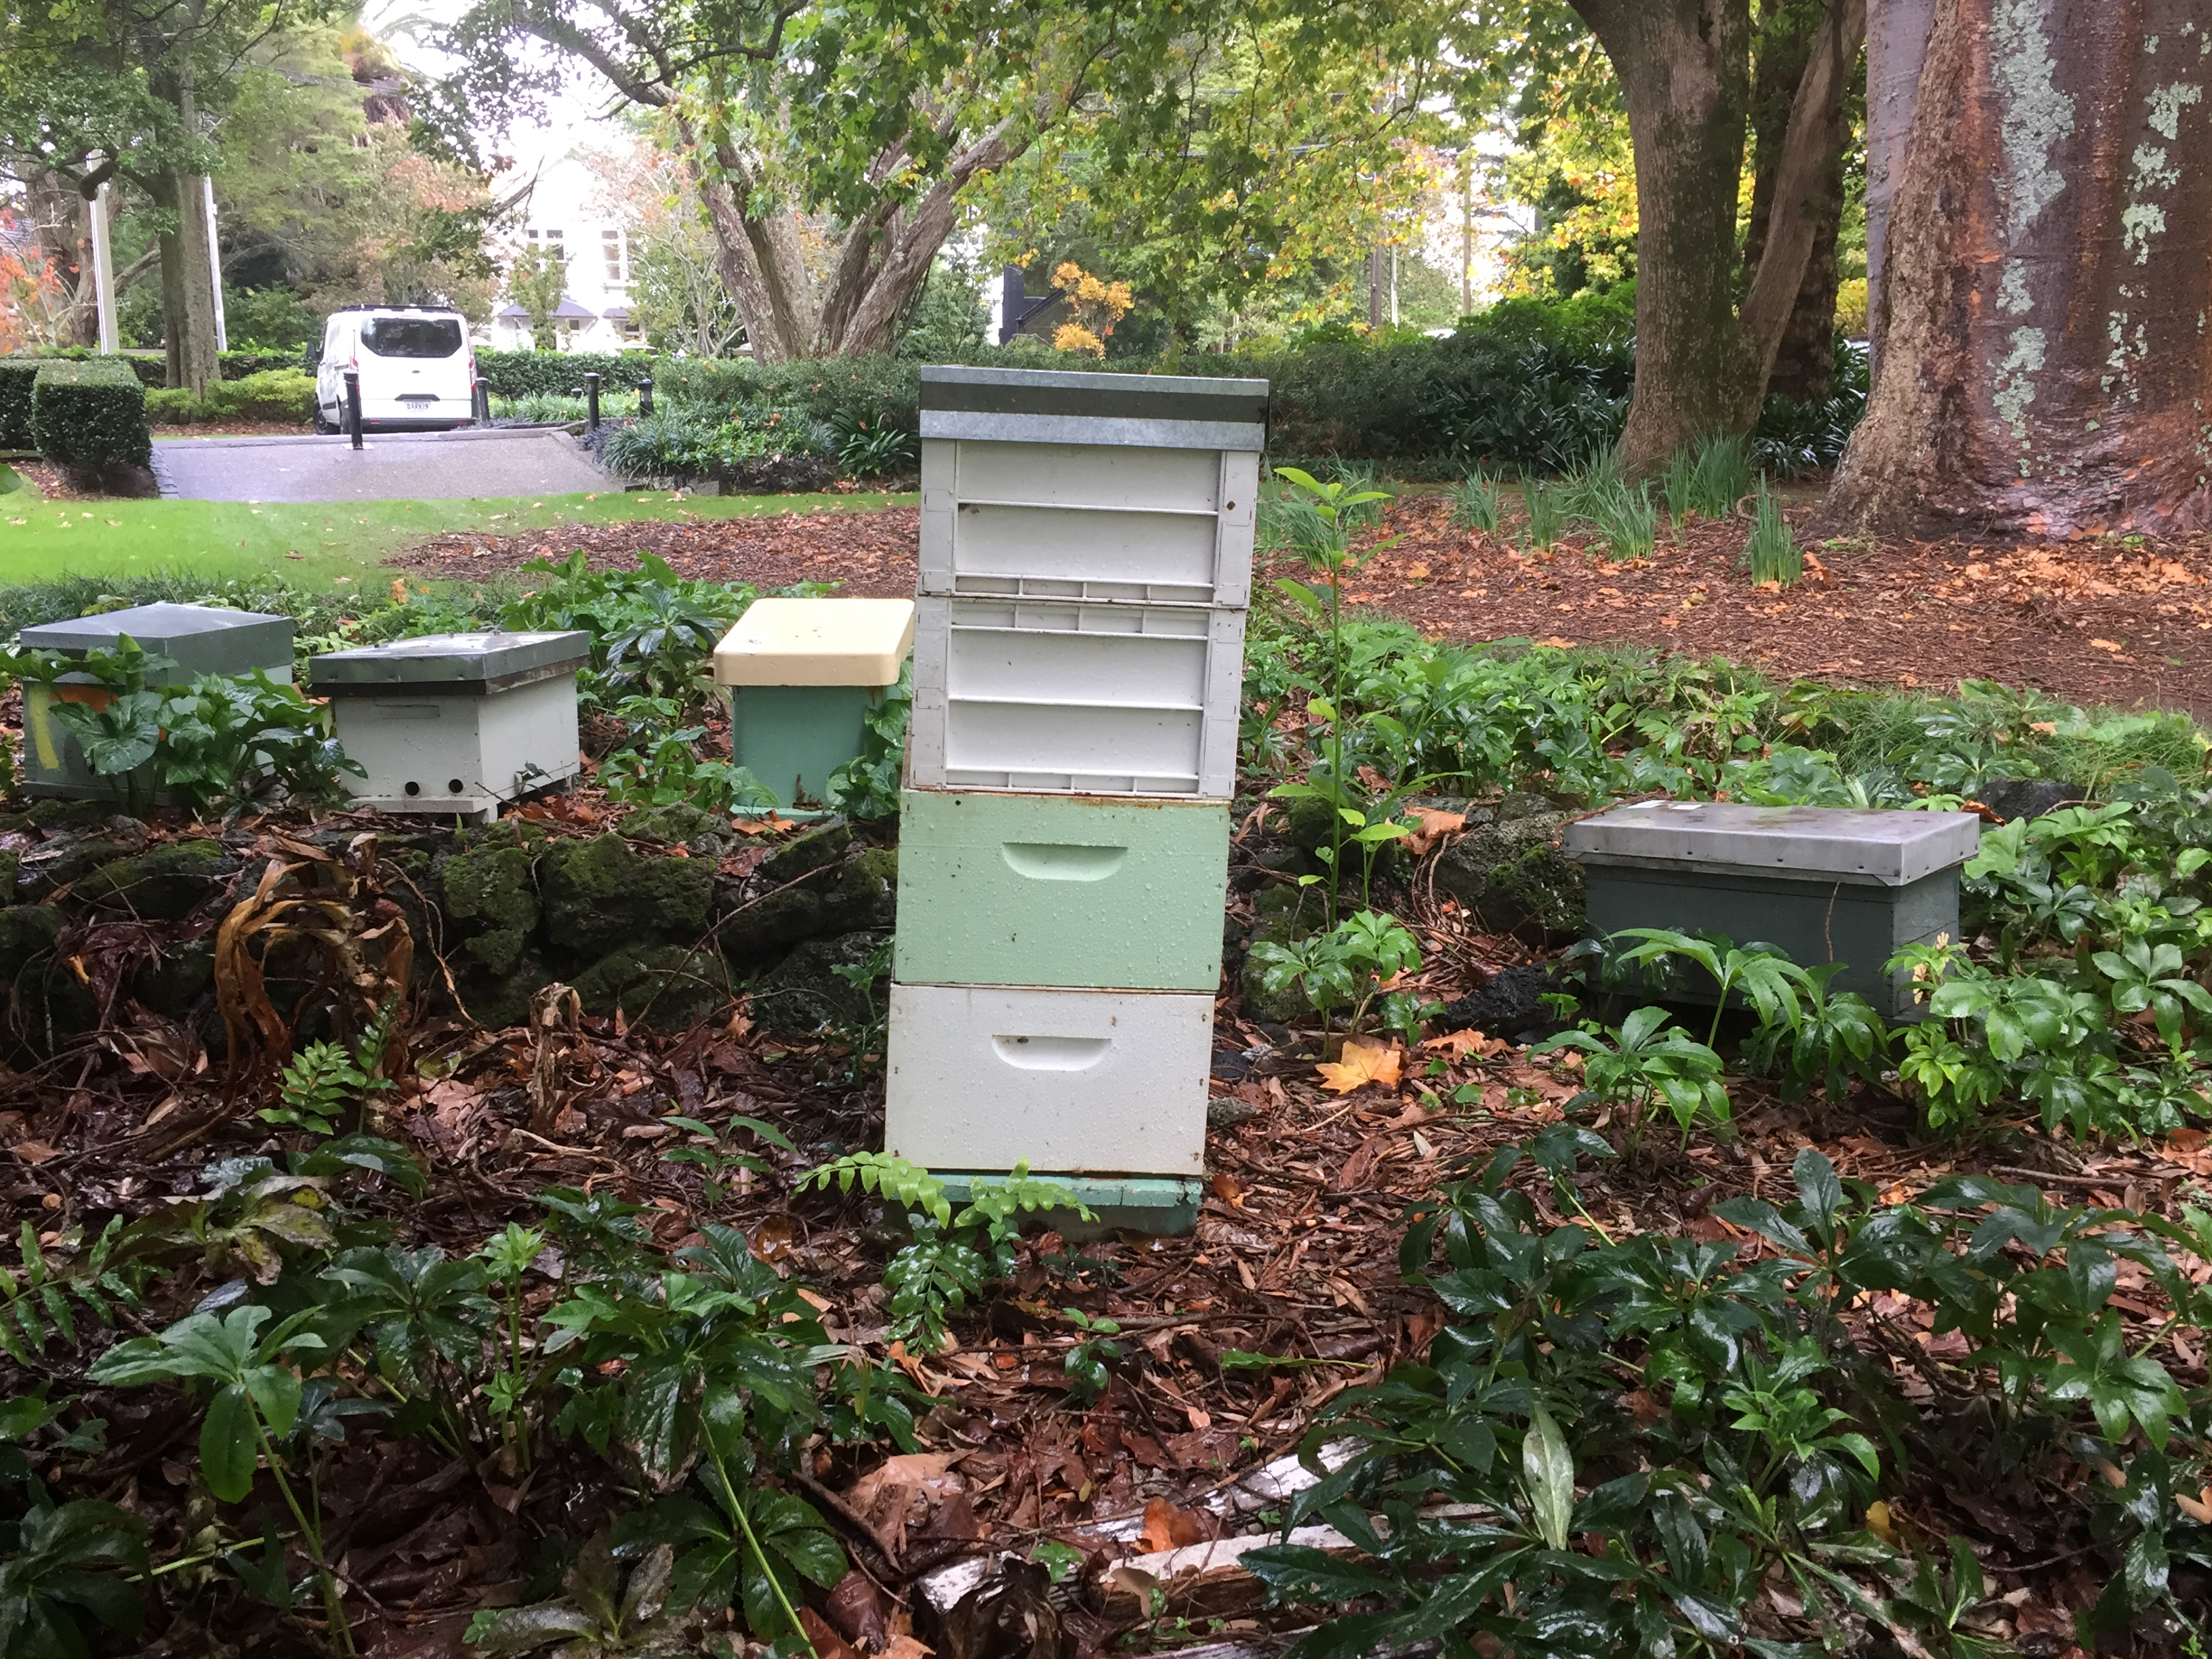 Currently the Pines hosts rented beehives to support pollination of the flowers, fruit and vegetables in its gardens (and all the surrounding ones!)